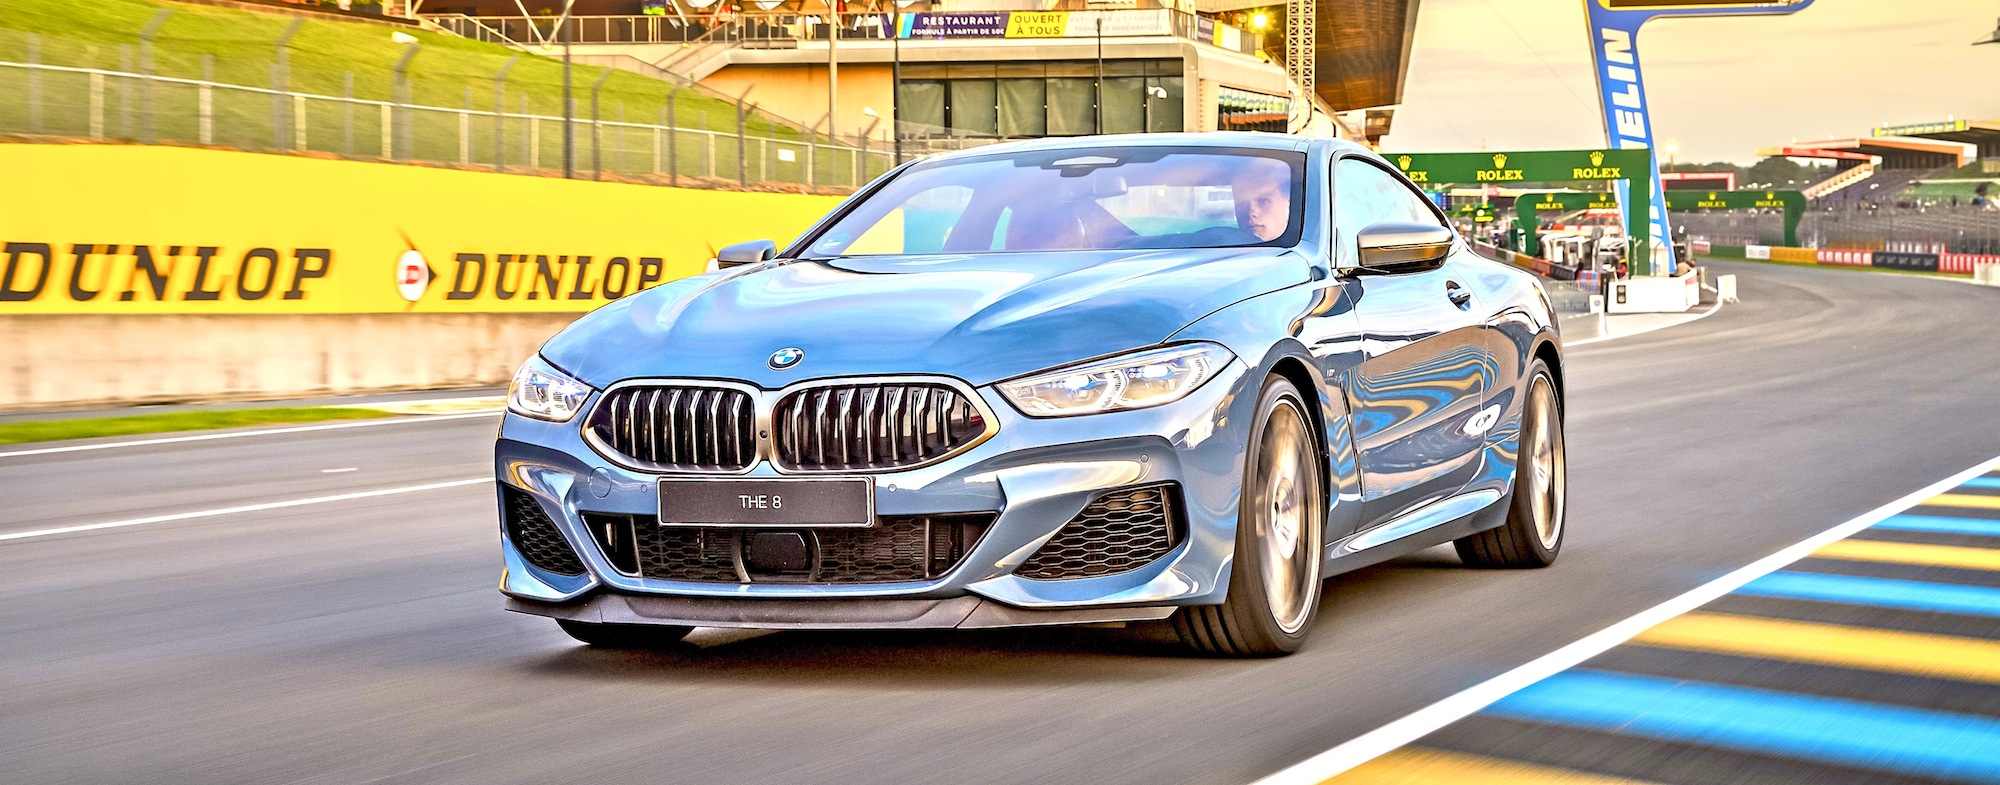 2019 BMW 8 Series Coupe: The Ultimate Upper-Class Driving Machine